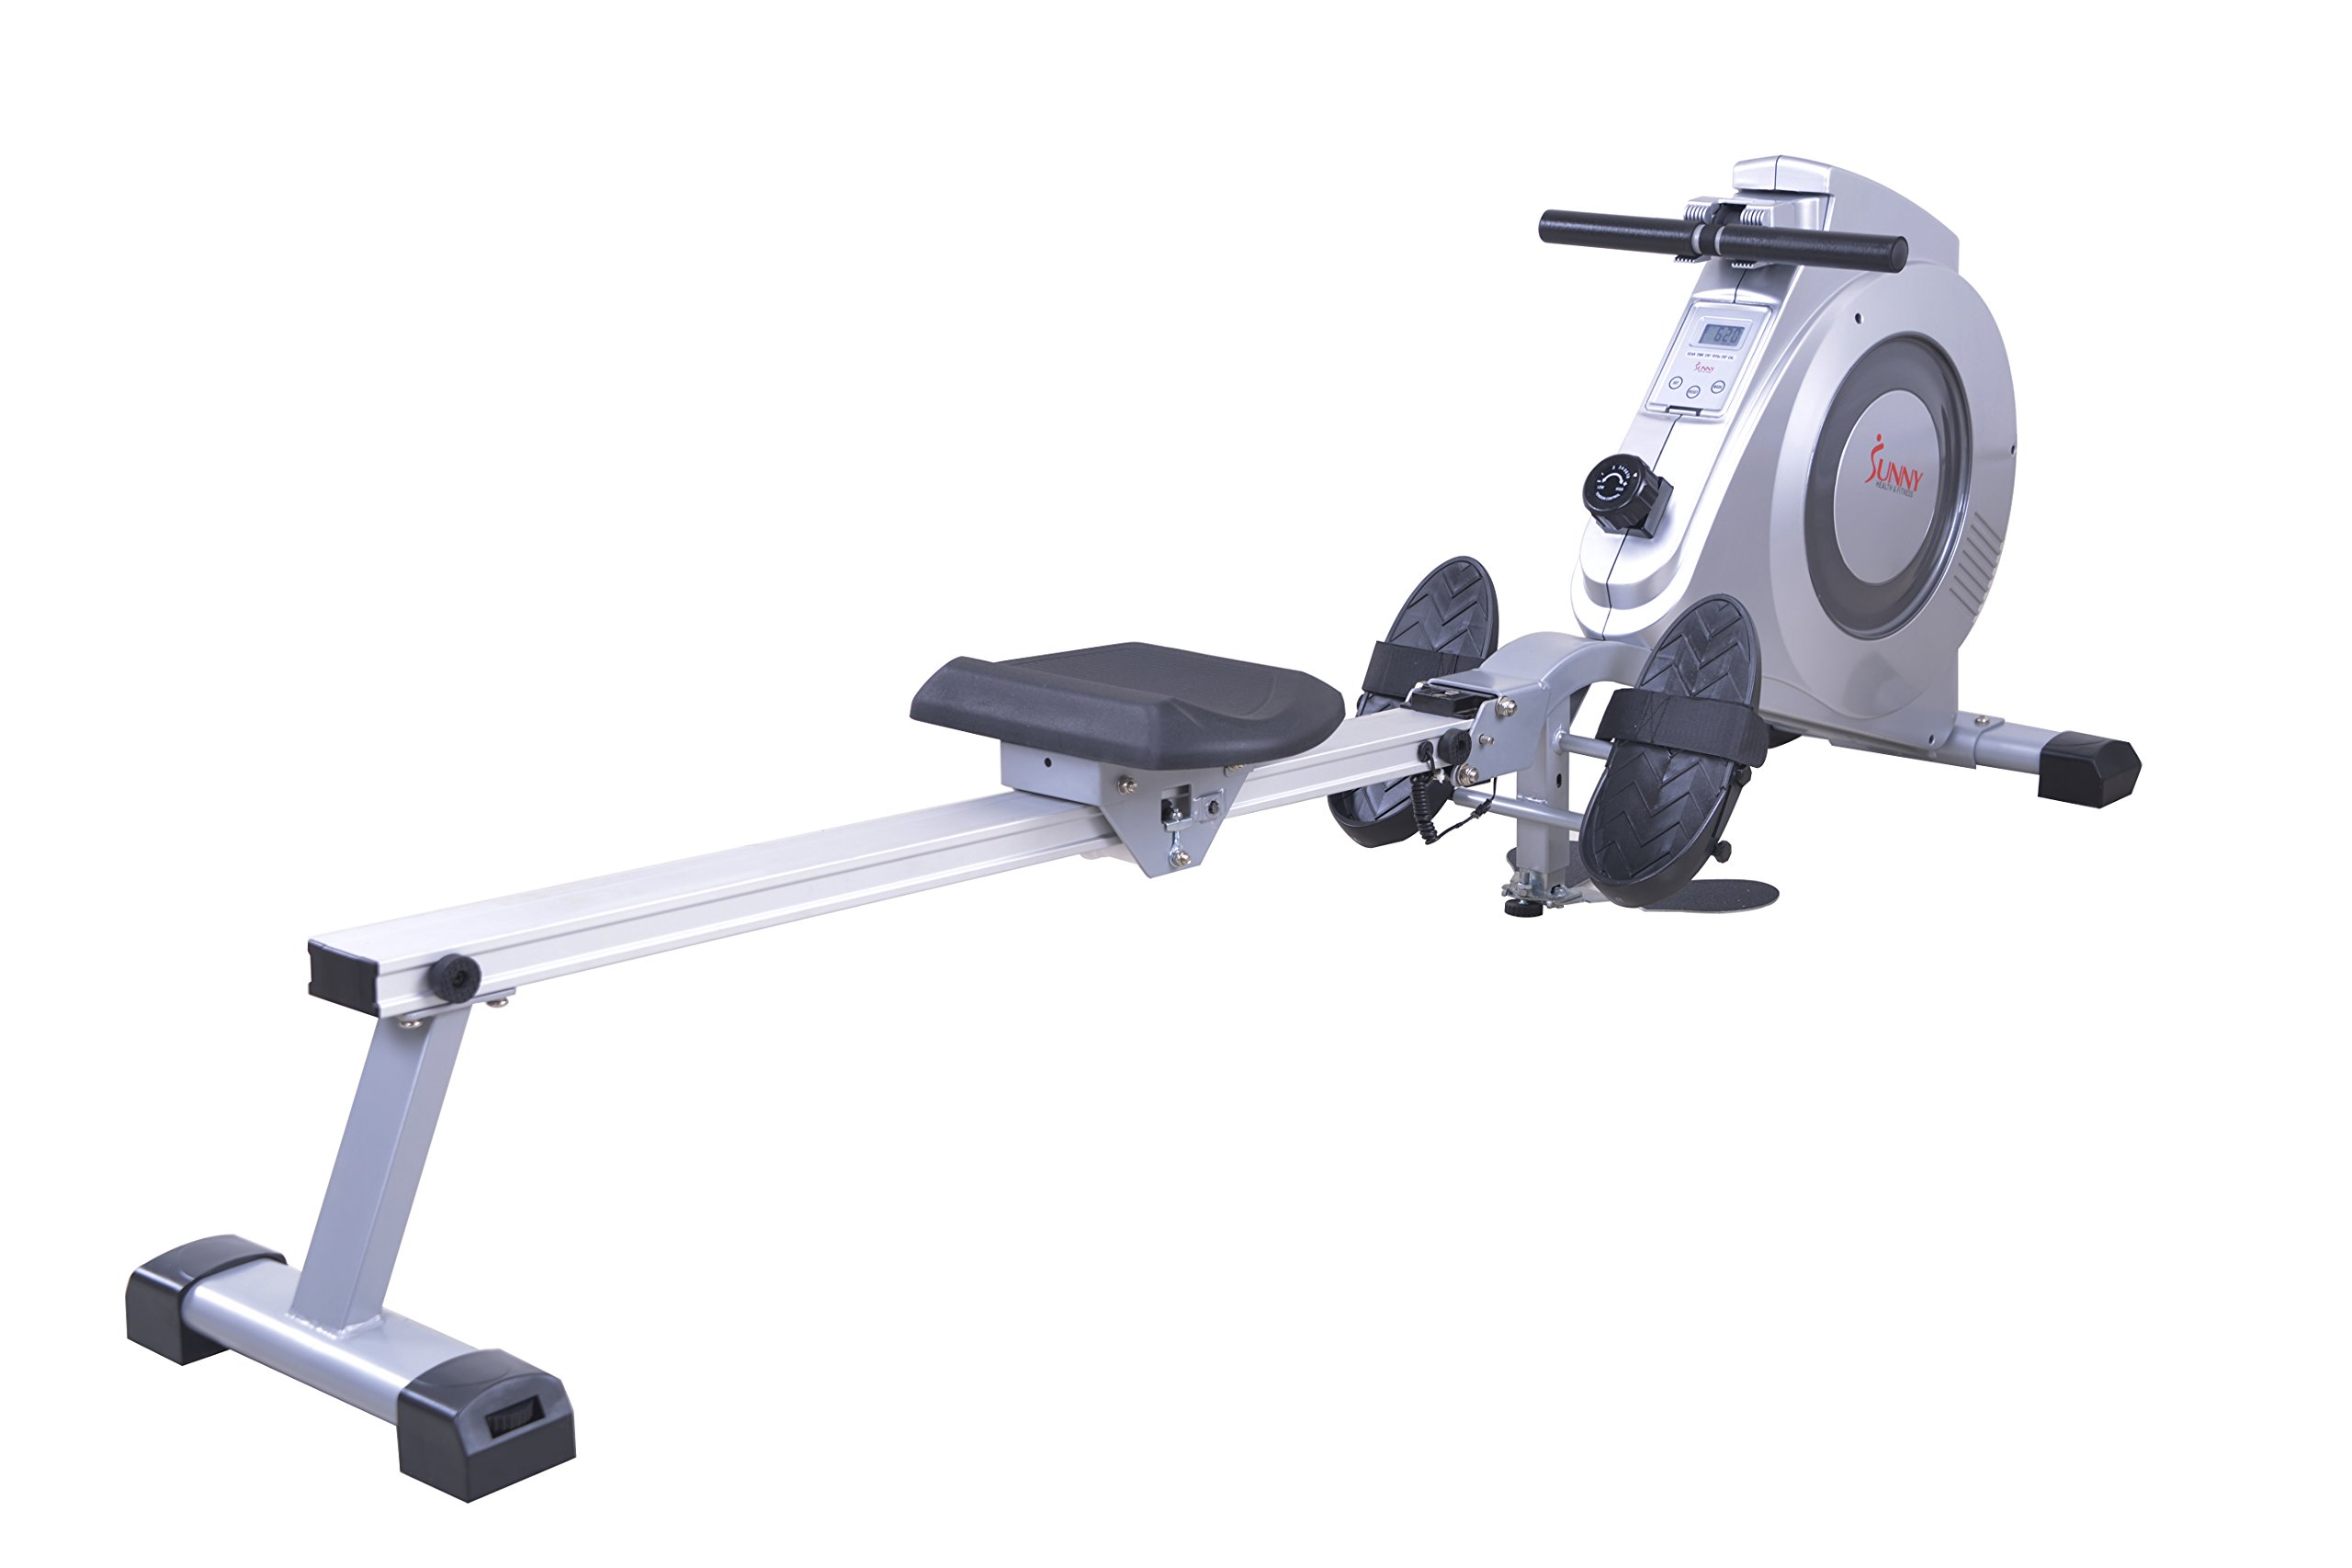 Sunny Health & Fitness SF-RW5612 Dual Function Rowing Machine Rower w/ LCD Monitor